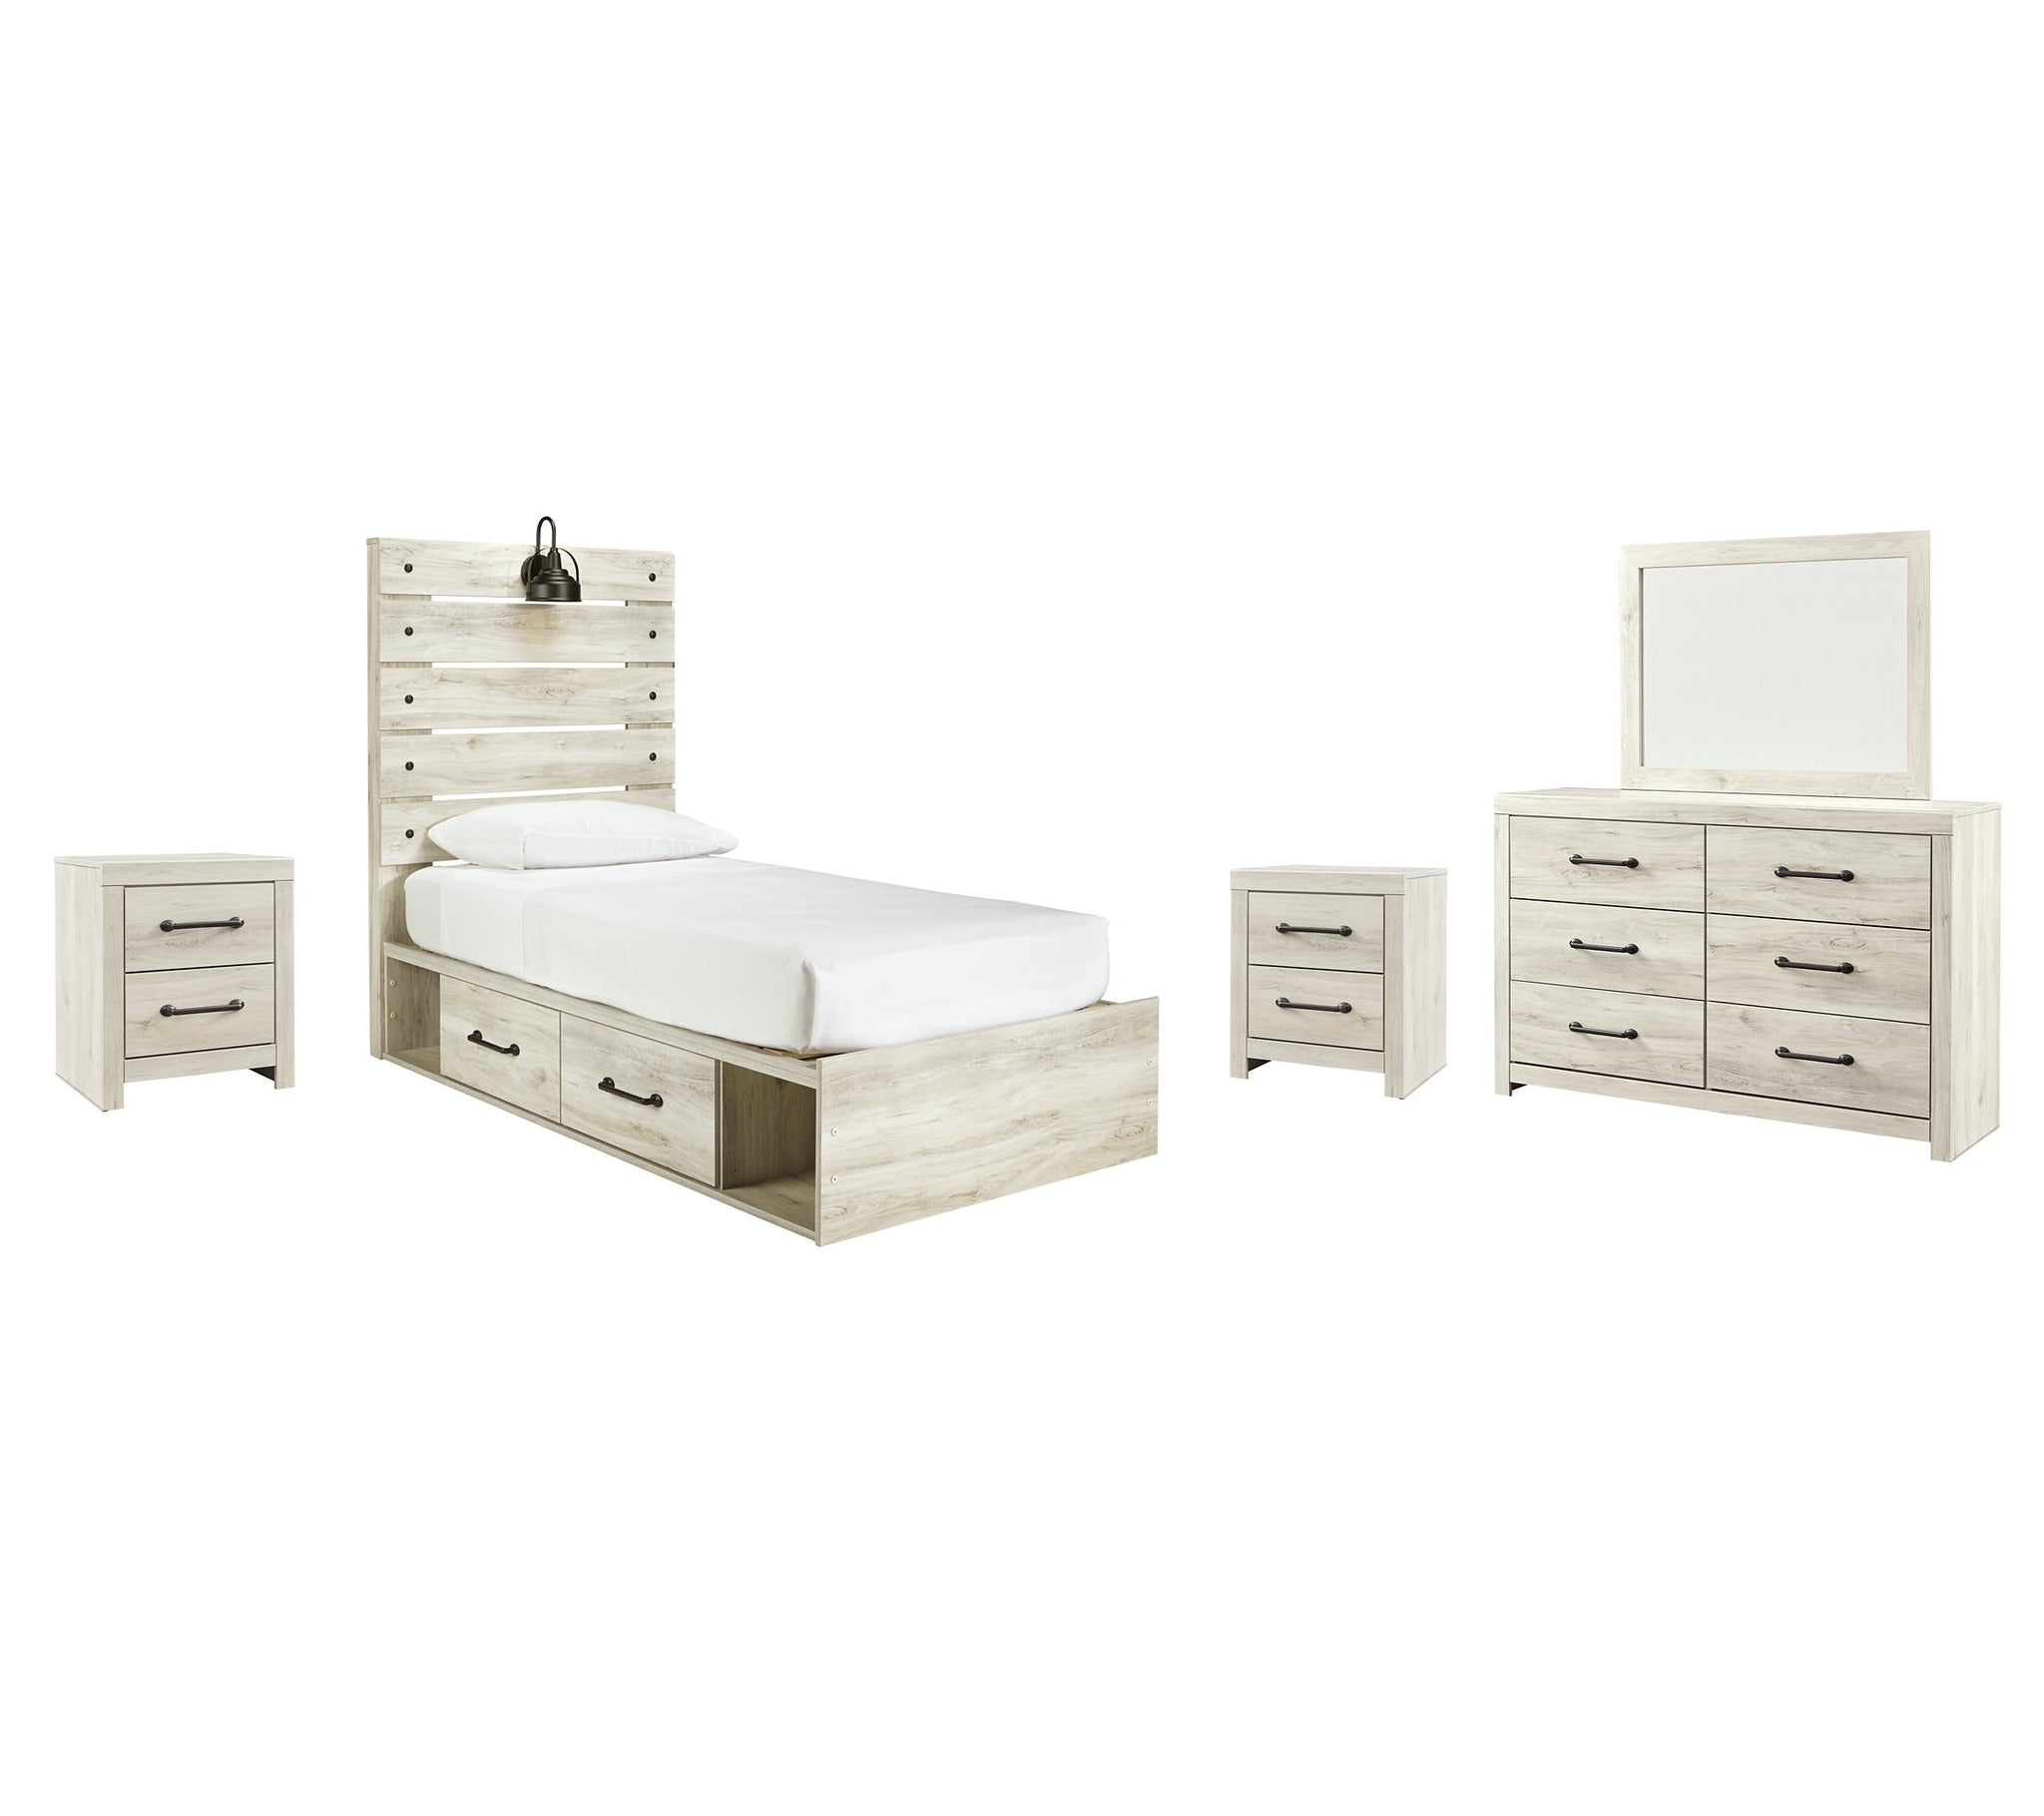 Cambeck Signature Design 7-Piece Youth Bedroom Set with 2 Storage Drawers image